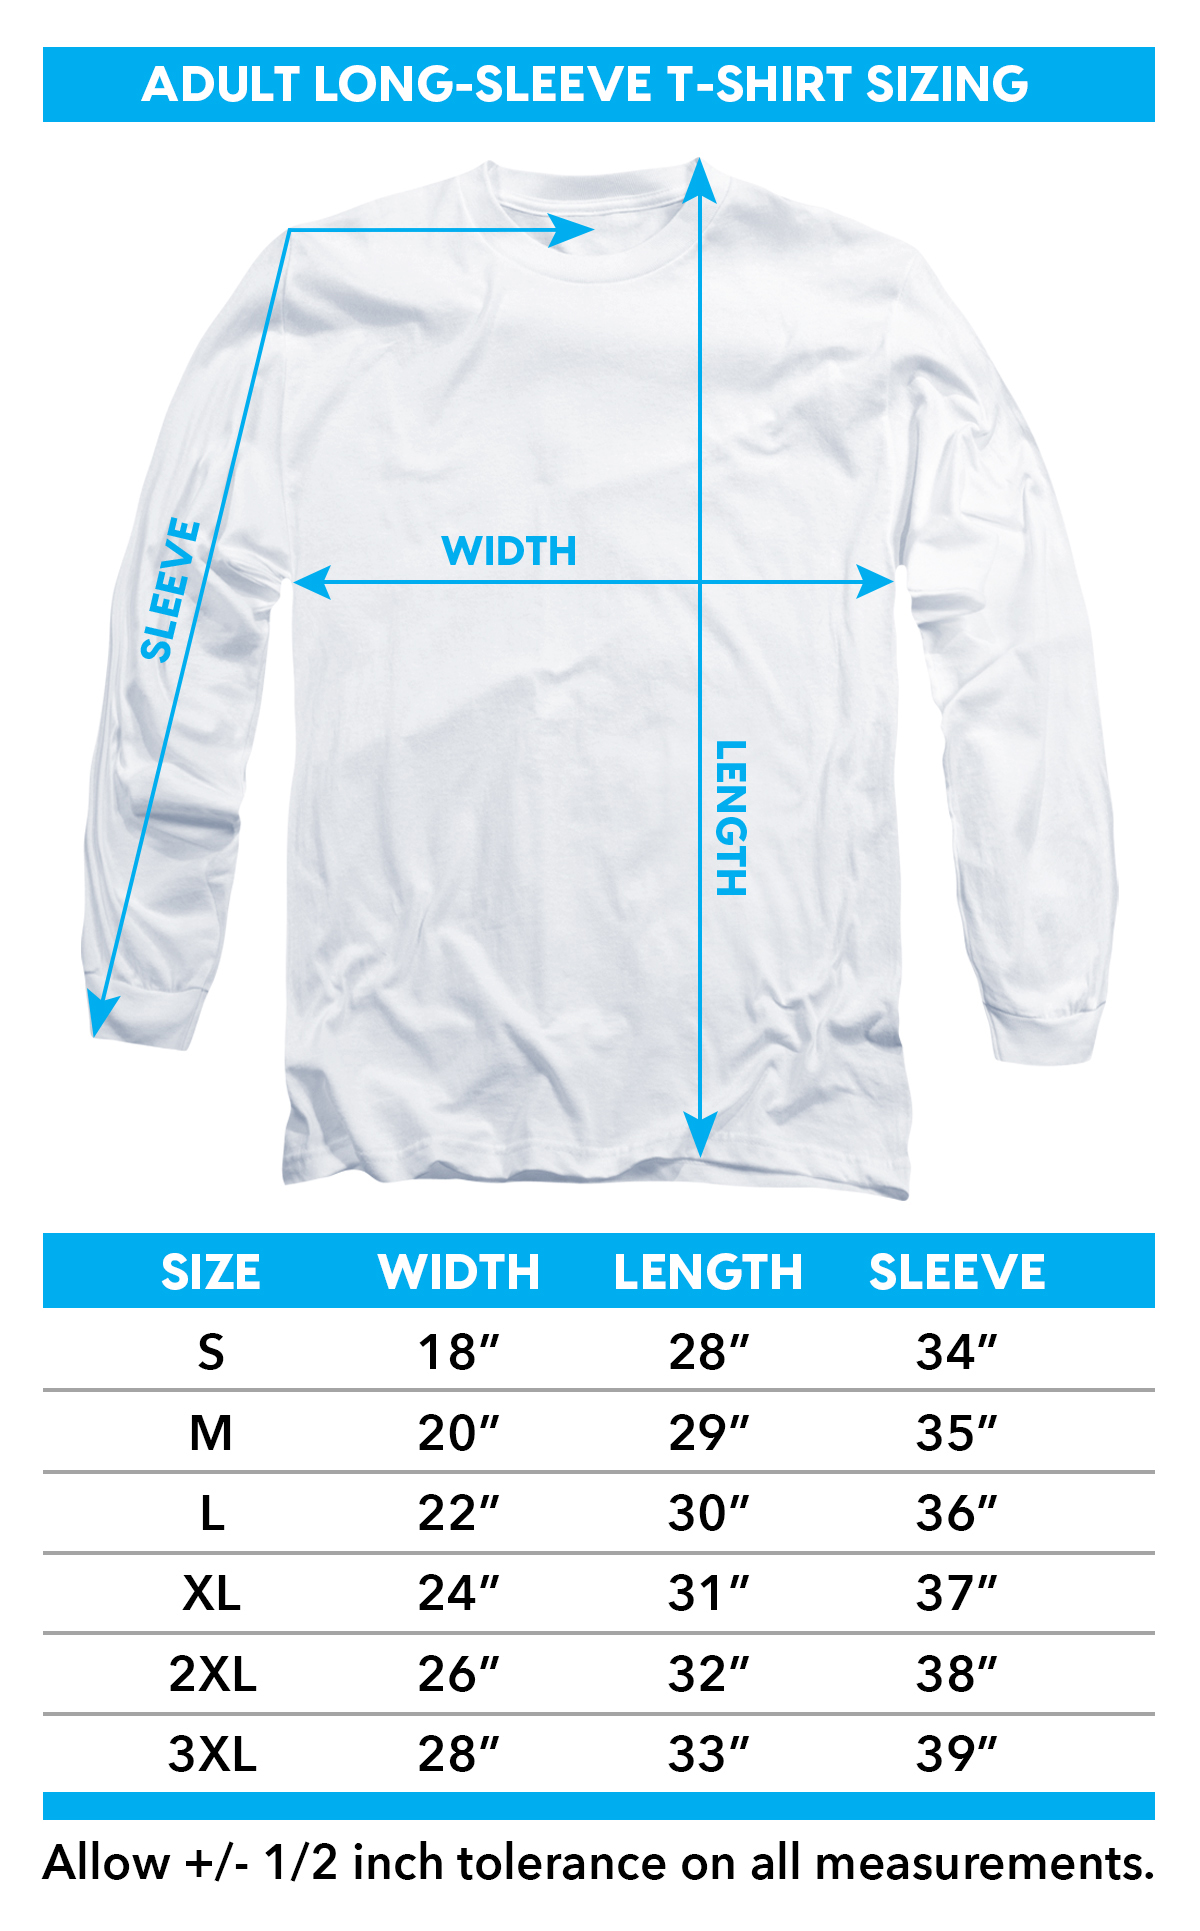 Sizing chart for Starship Troopers Long Sleeve Shirt - ISLA Nublar 93 TRV-SONYM111-AL